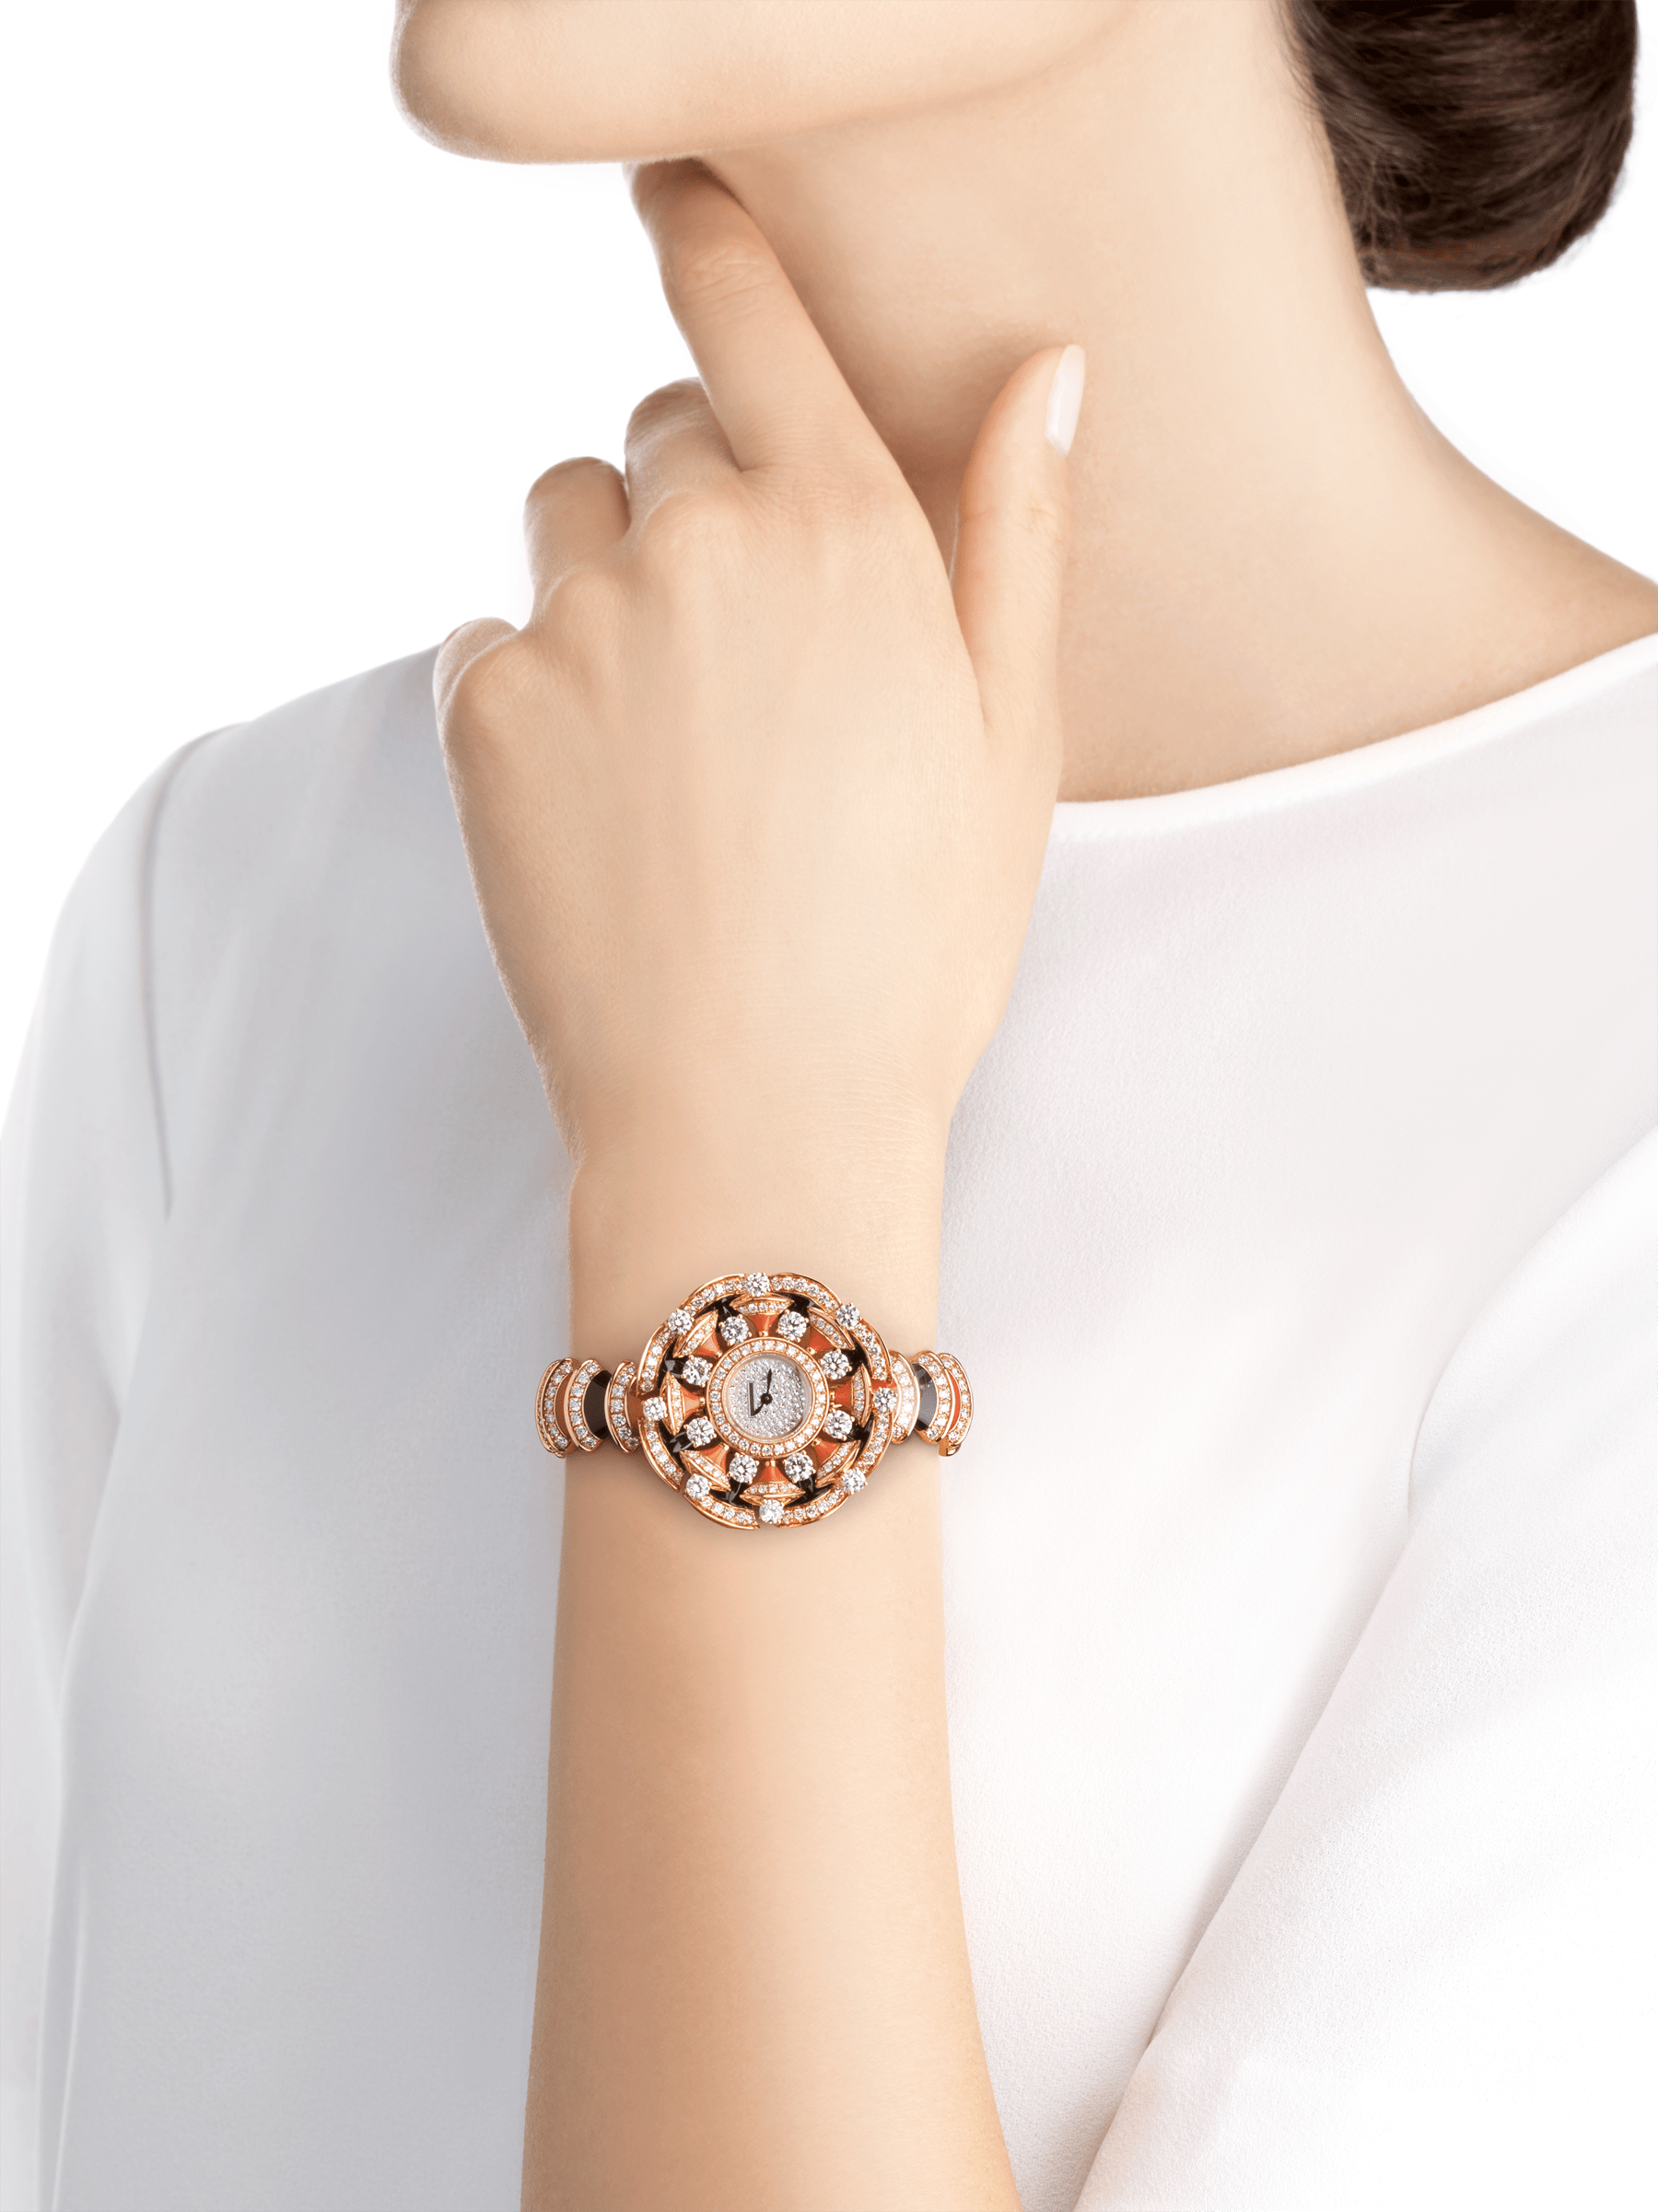 DIVAS' DREAM watch in 18 kt rose gold case and bracelet, both set with brilliant-cut diamonds, onyx and coral rubrum elements, with snow pavé dial 102422 image 3